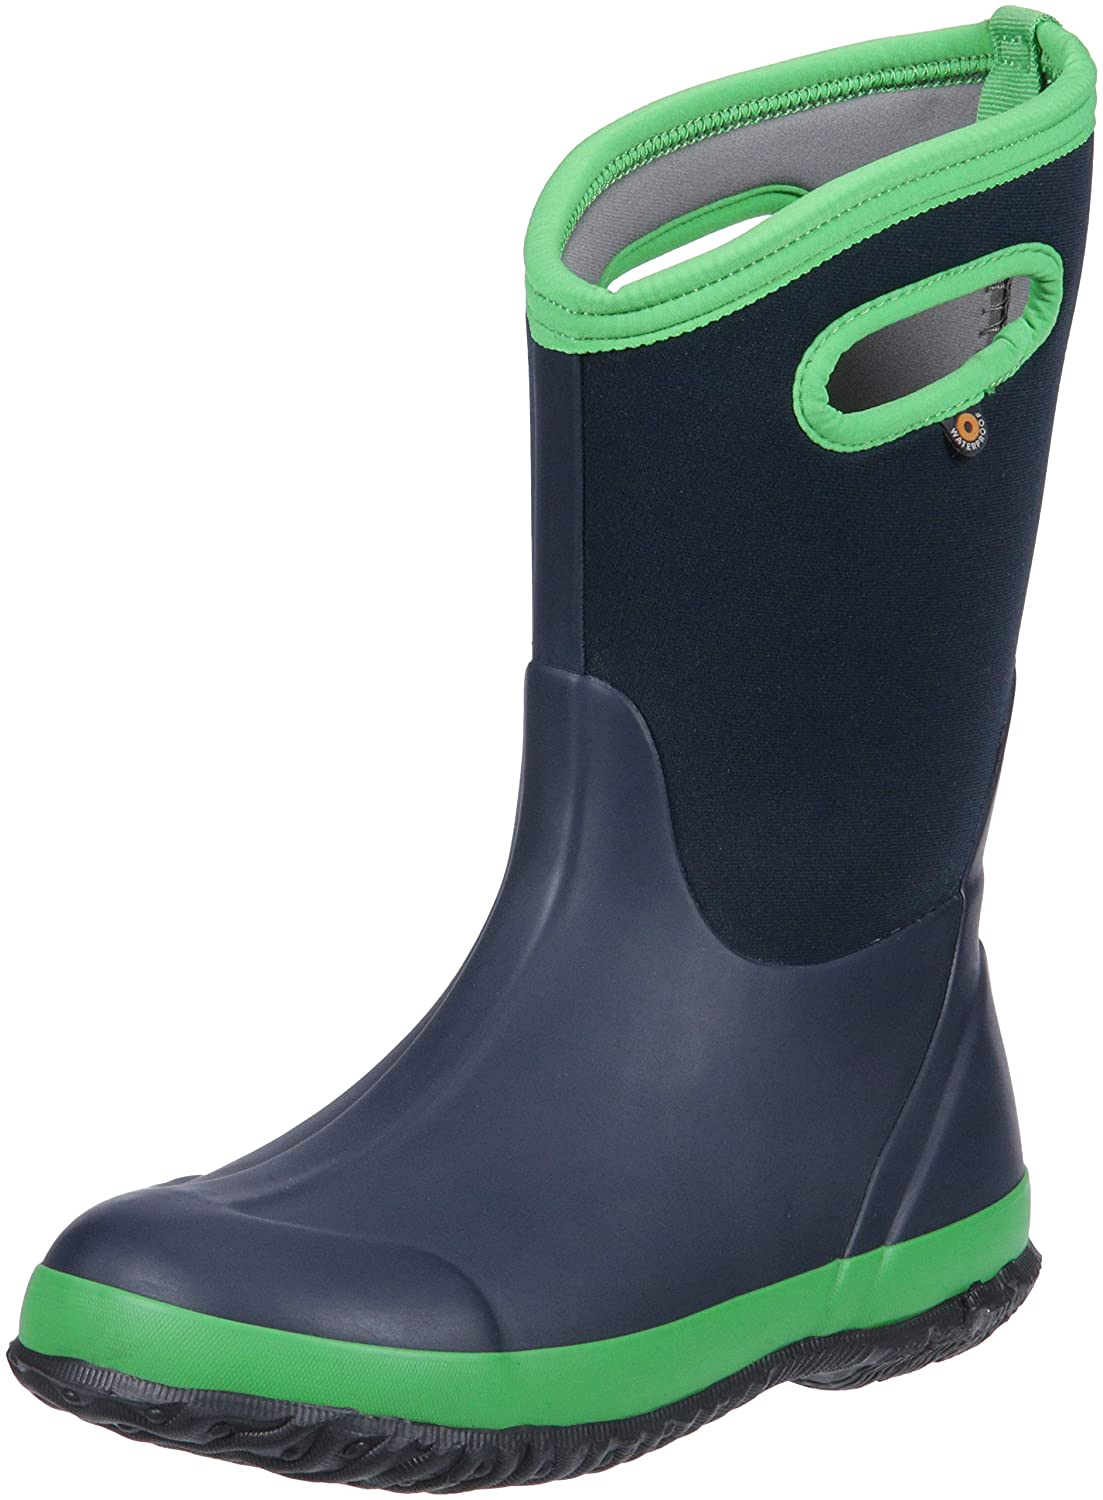 Bogs Kids' Classic High Waterproof Insulated Rubber Neoprene Rain Boot Snow Kids Classic